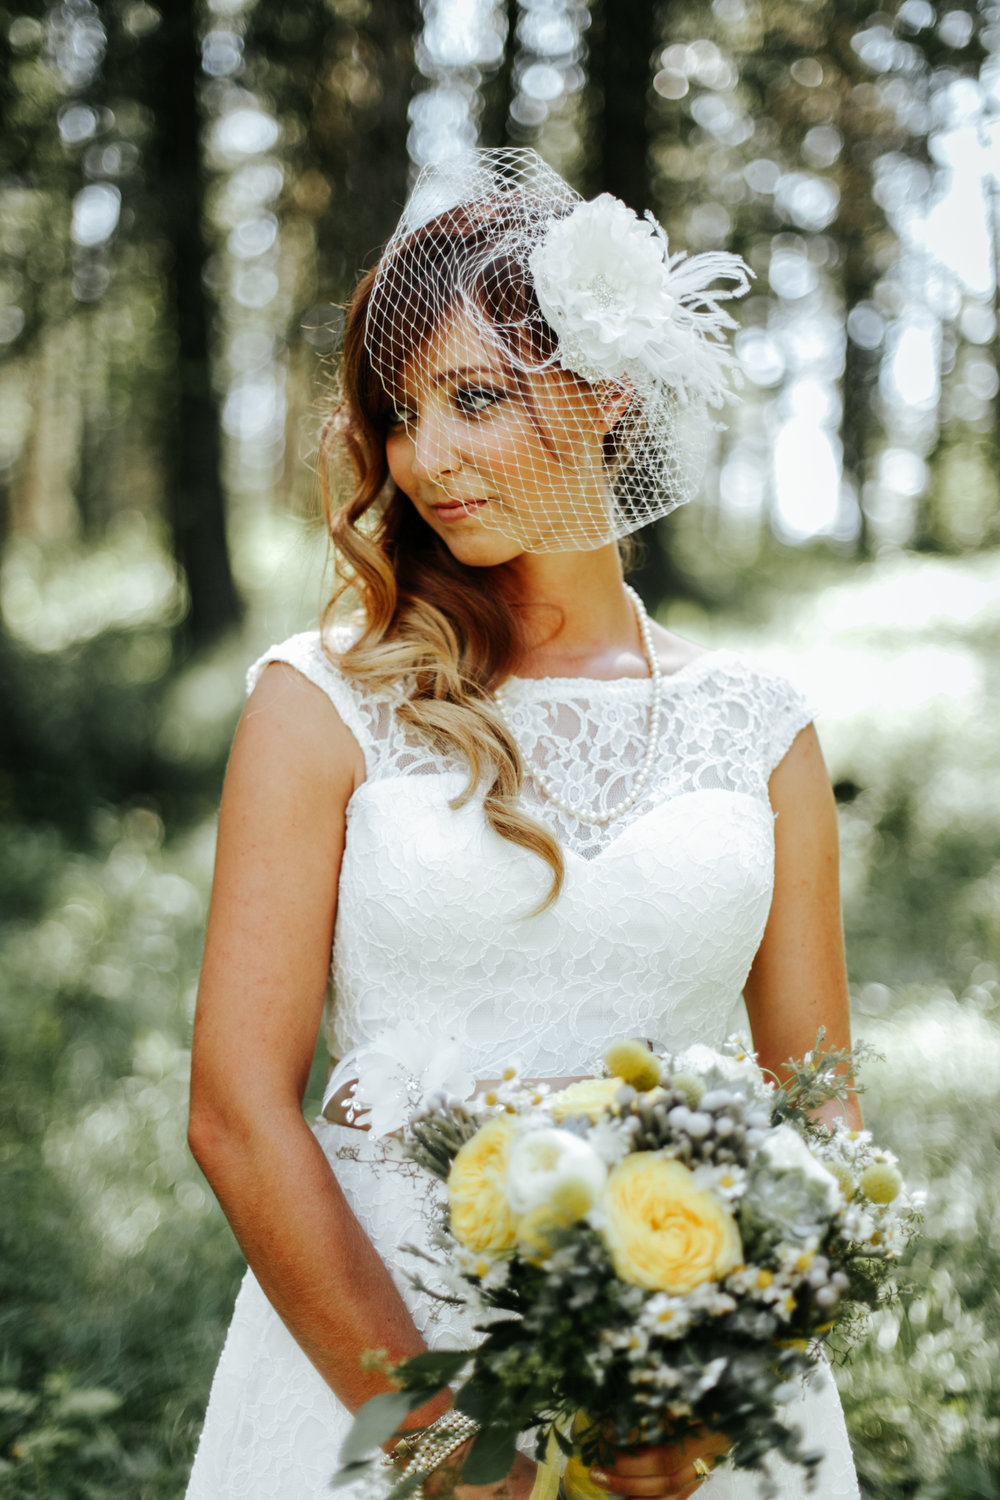 lethbridge-wedding-photography-love-and-be-loved-photographer-image-picture-photo-74.jpg